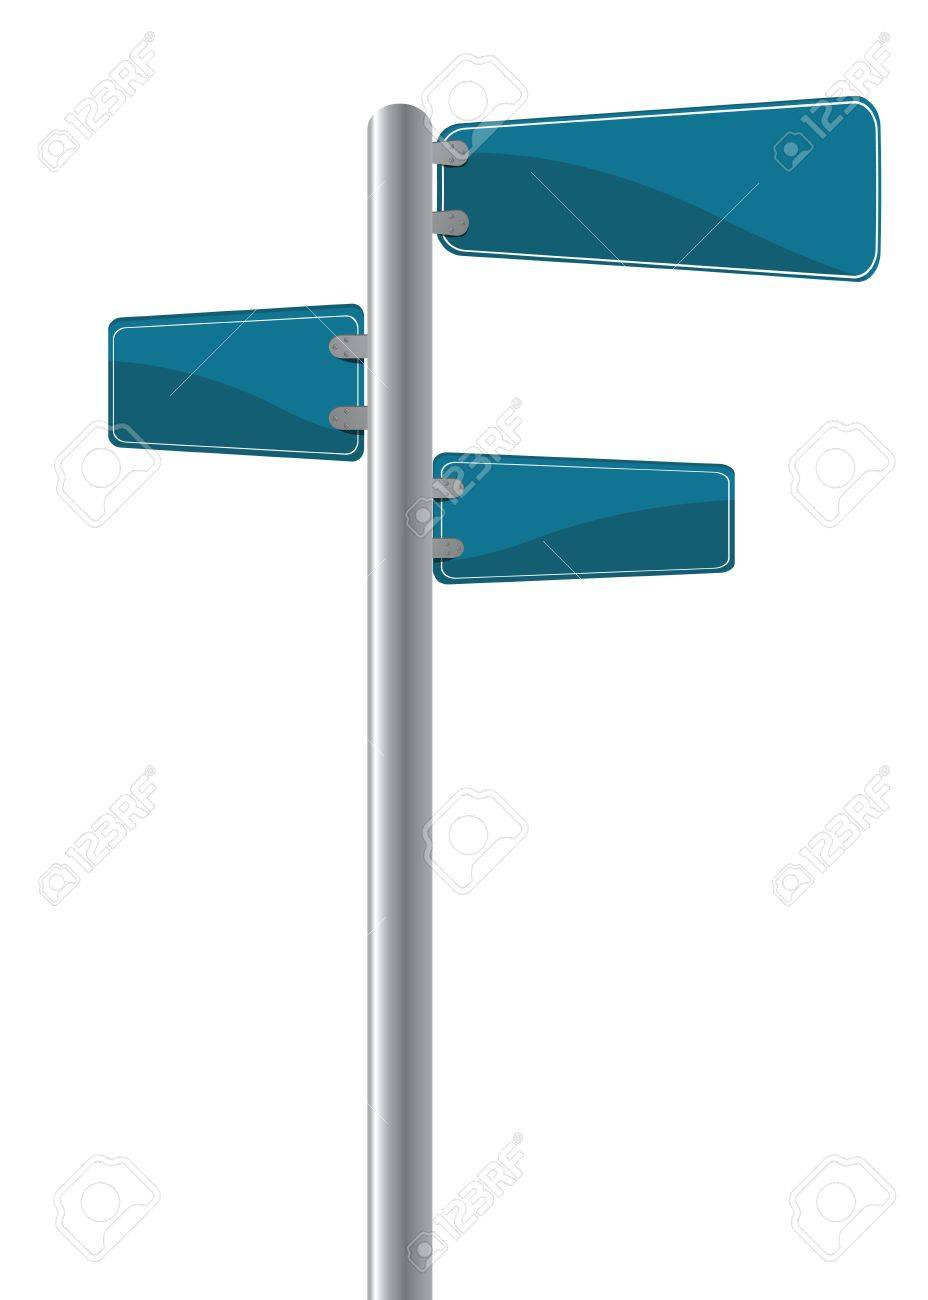 Editable Street Signs Over White Stock Photo, Picture And Royalty ...